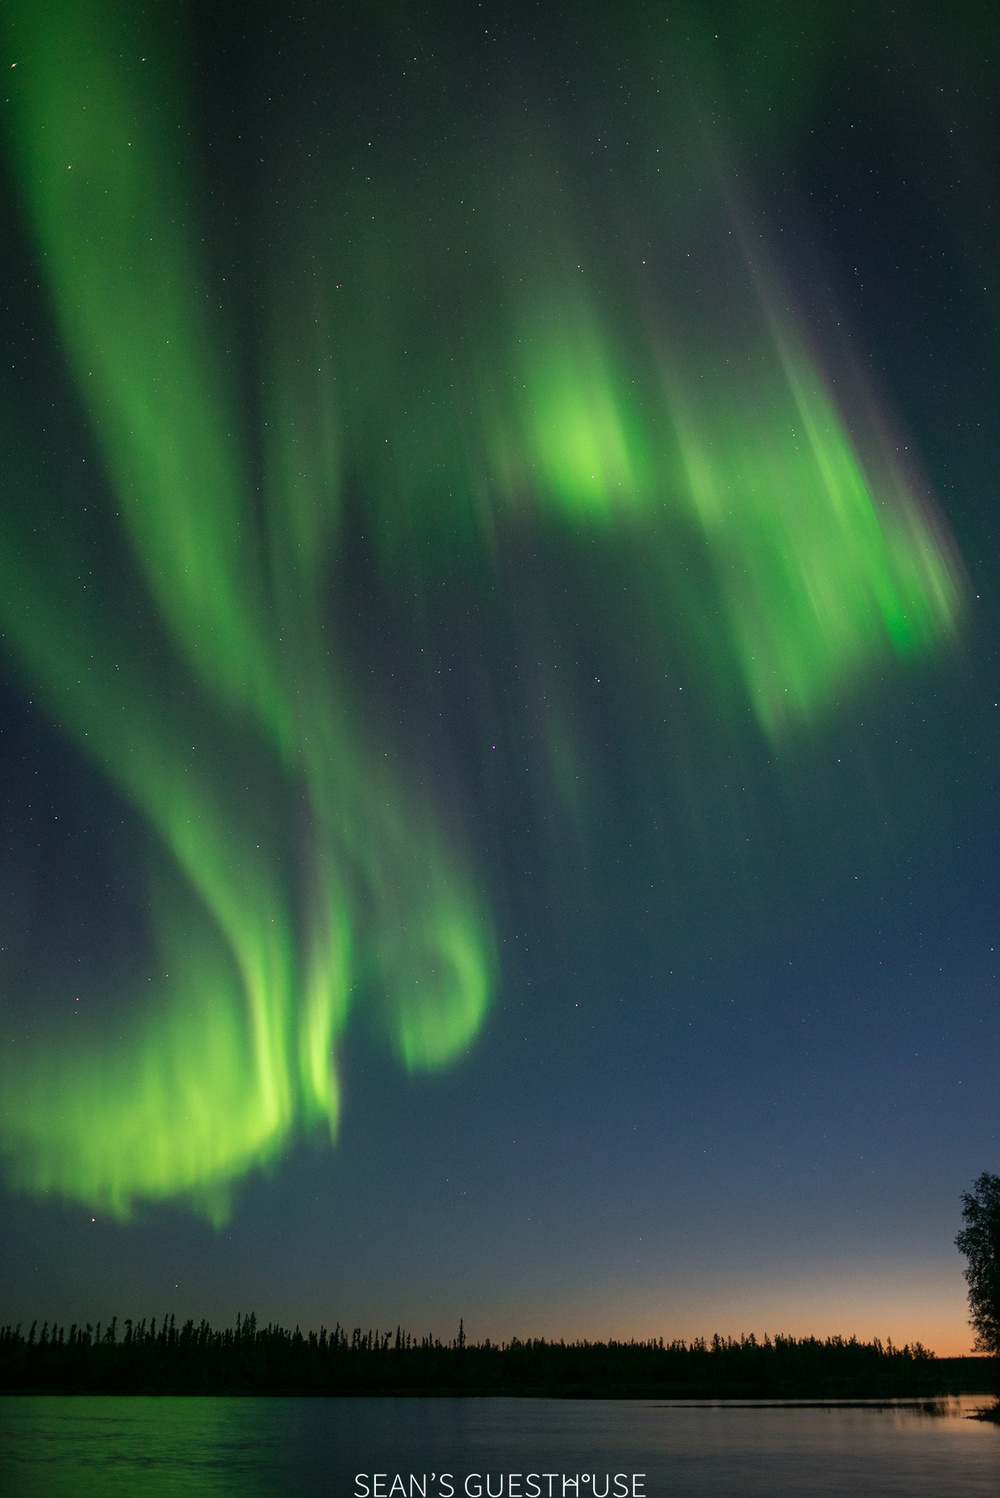 Sean's Guesthouse - Yellowknife Aurora Borealis - August Aurora - 7.jpg